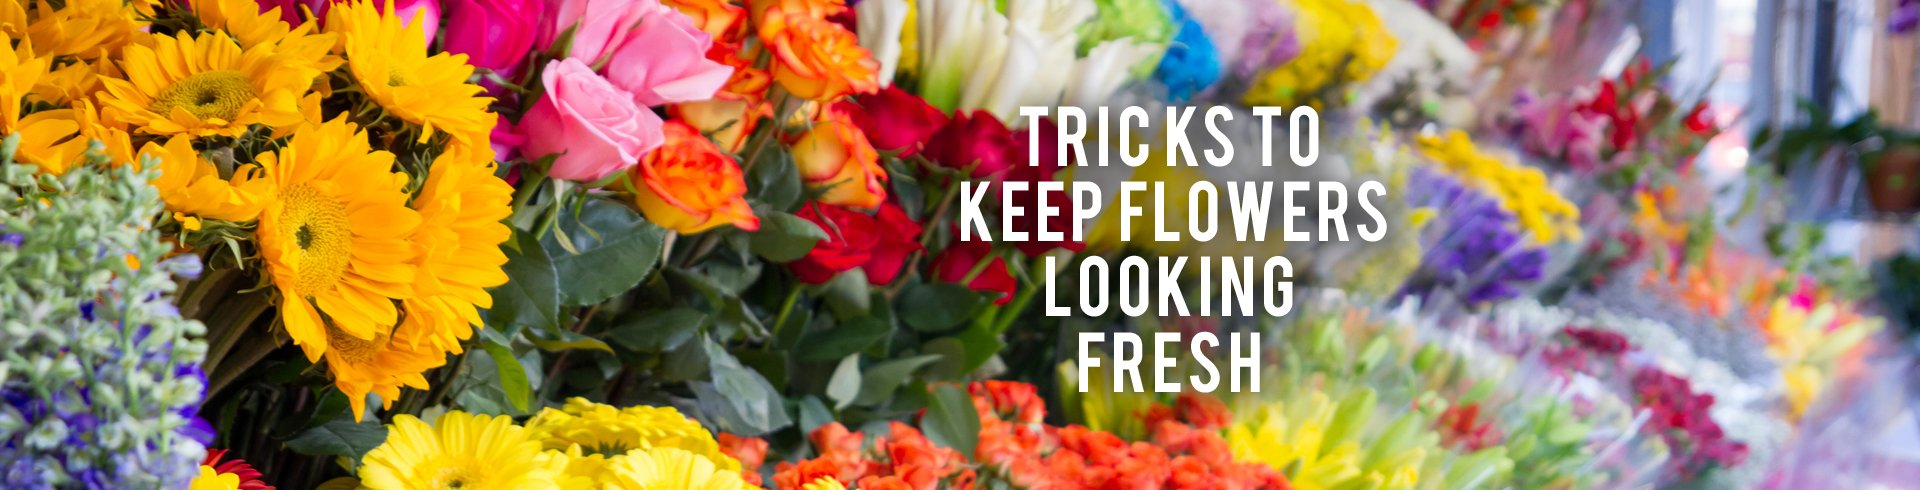 Tricks to Keep Flowers Looking Fresh